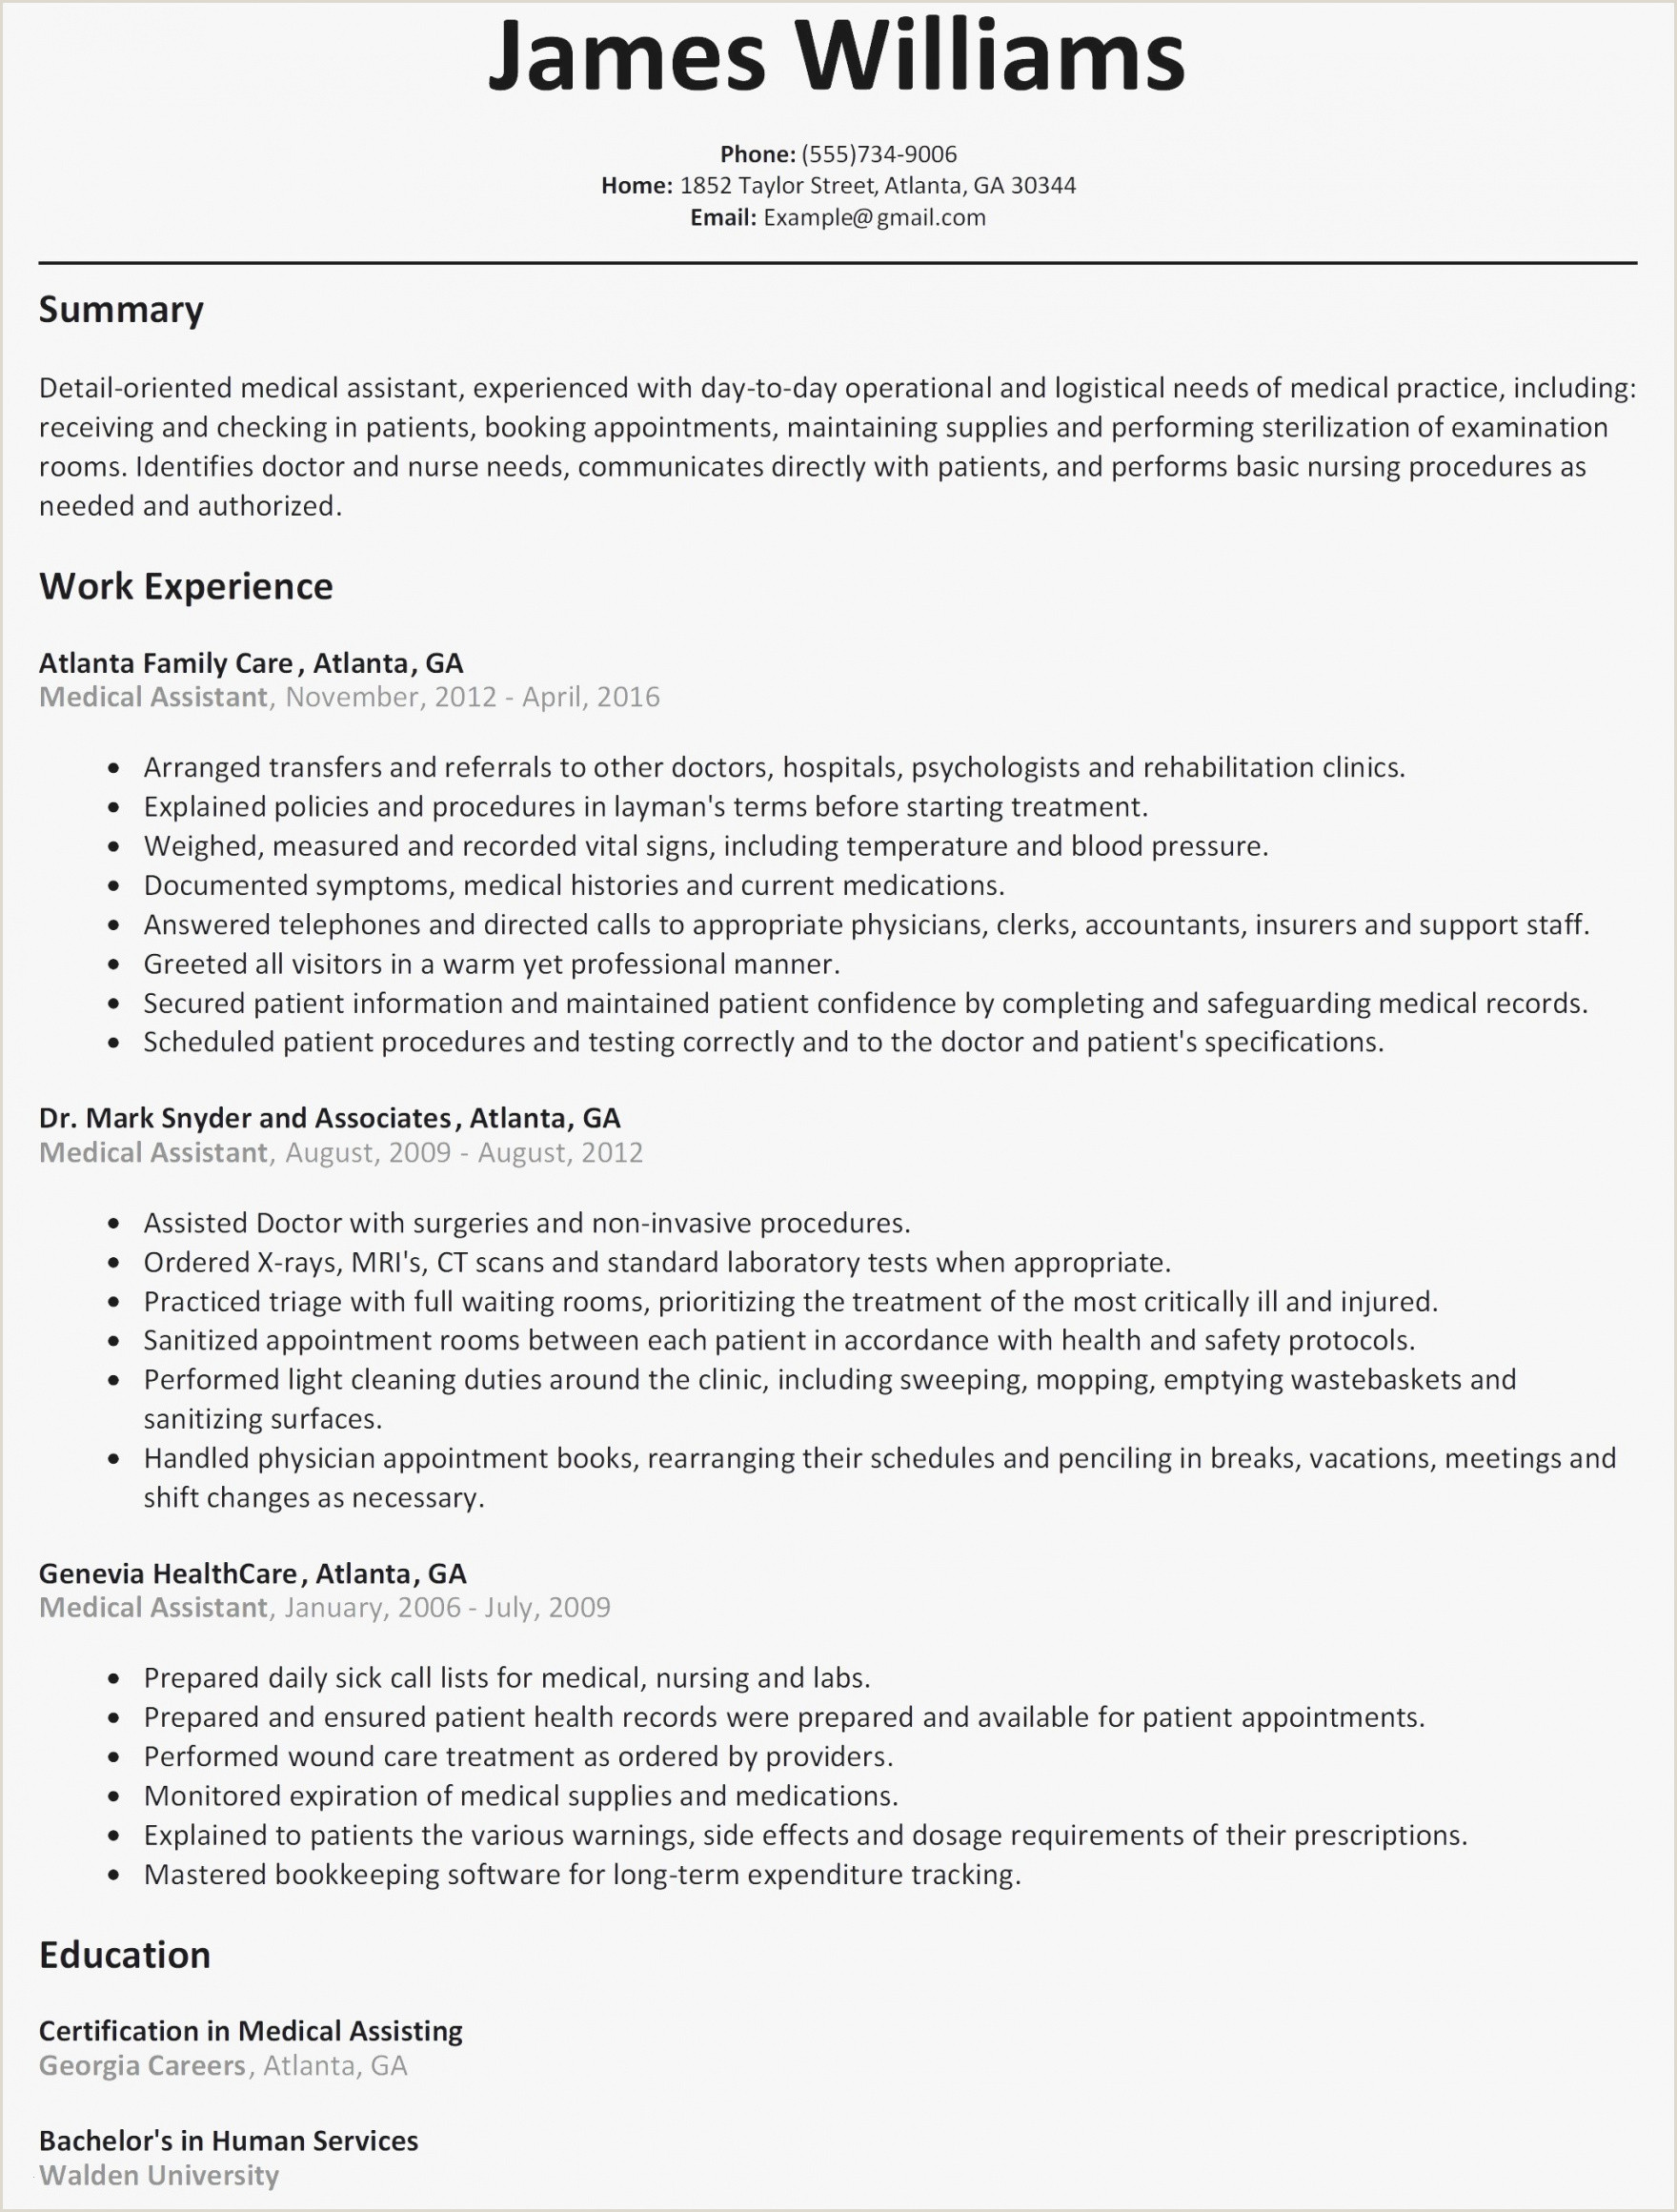 Cosmetology Resume Examples Beginners Resume Examples for Beginners